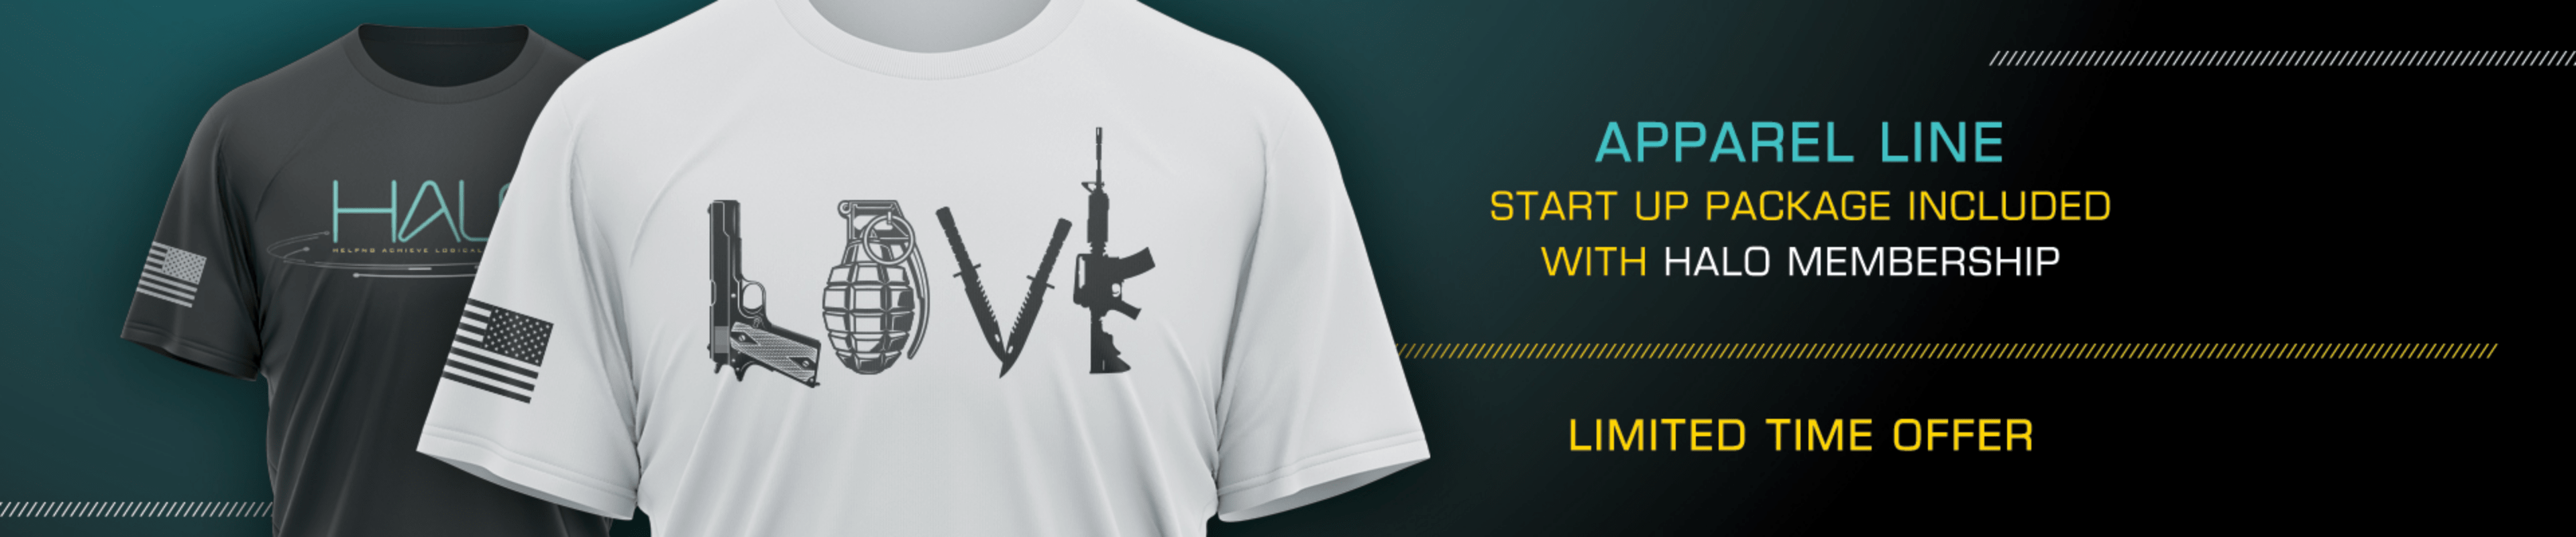 apparel line start up package included with halo membership